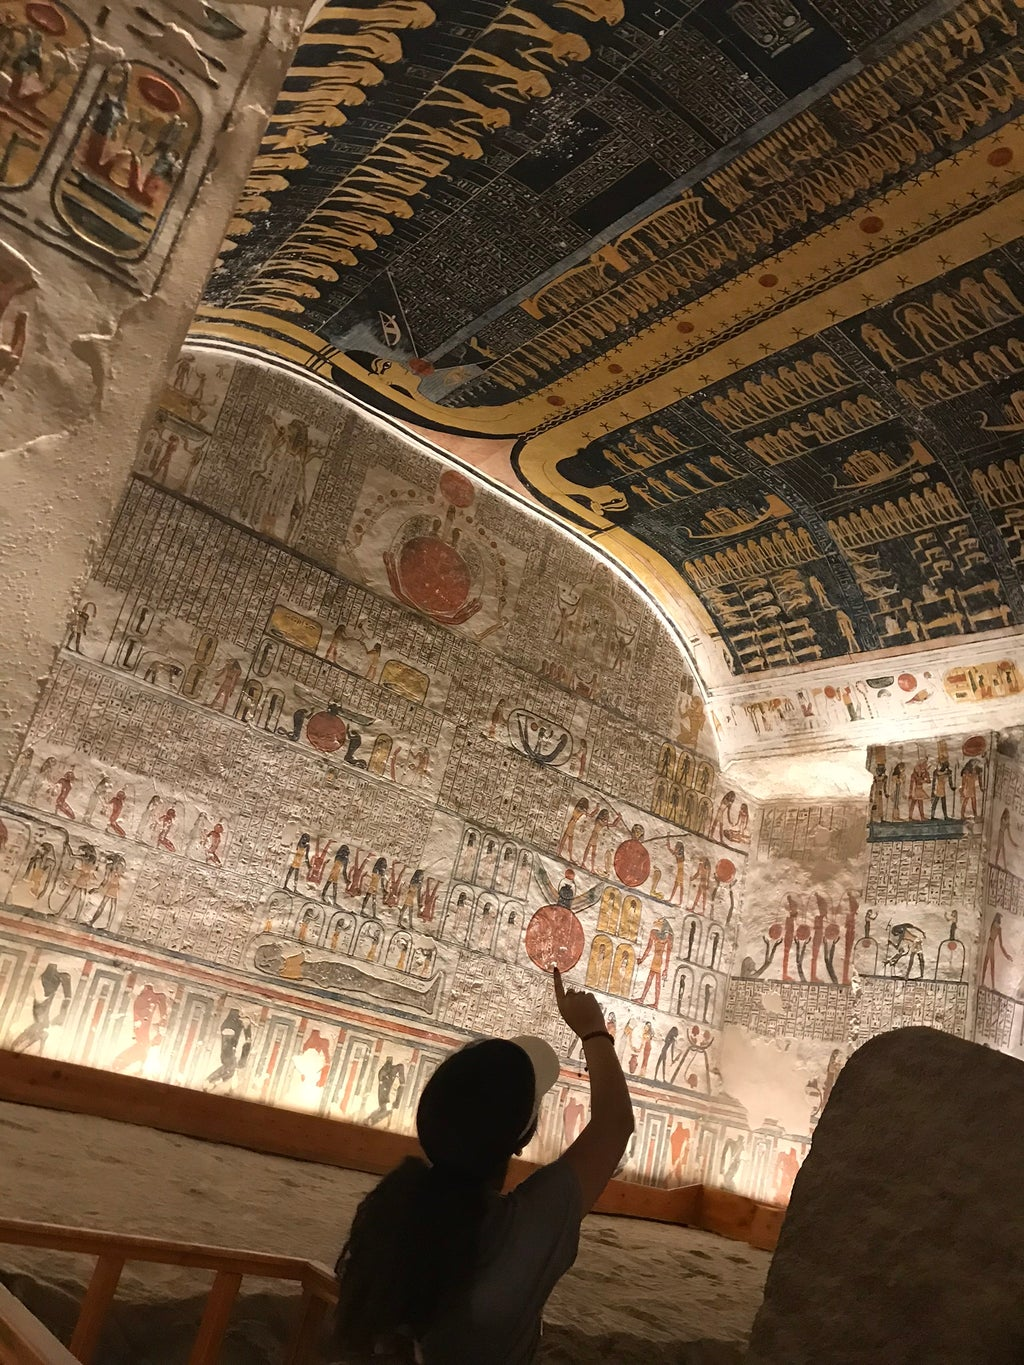 Me at the Valley of the Kings in Luxor, Egypt